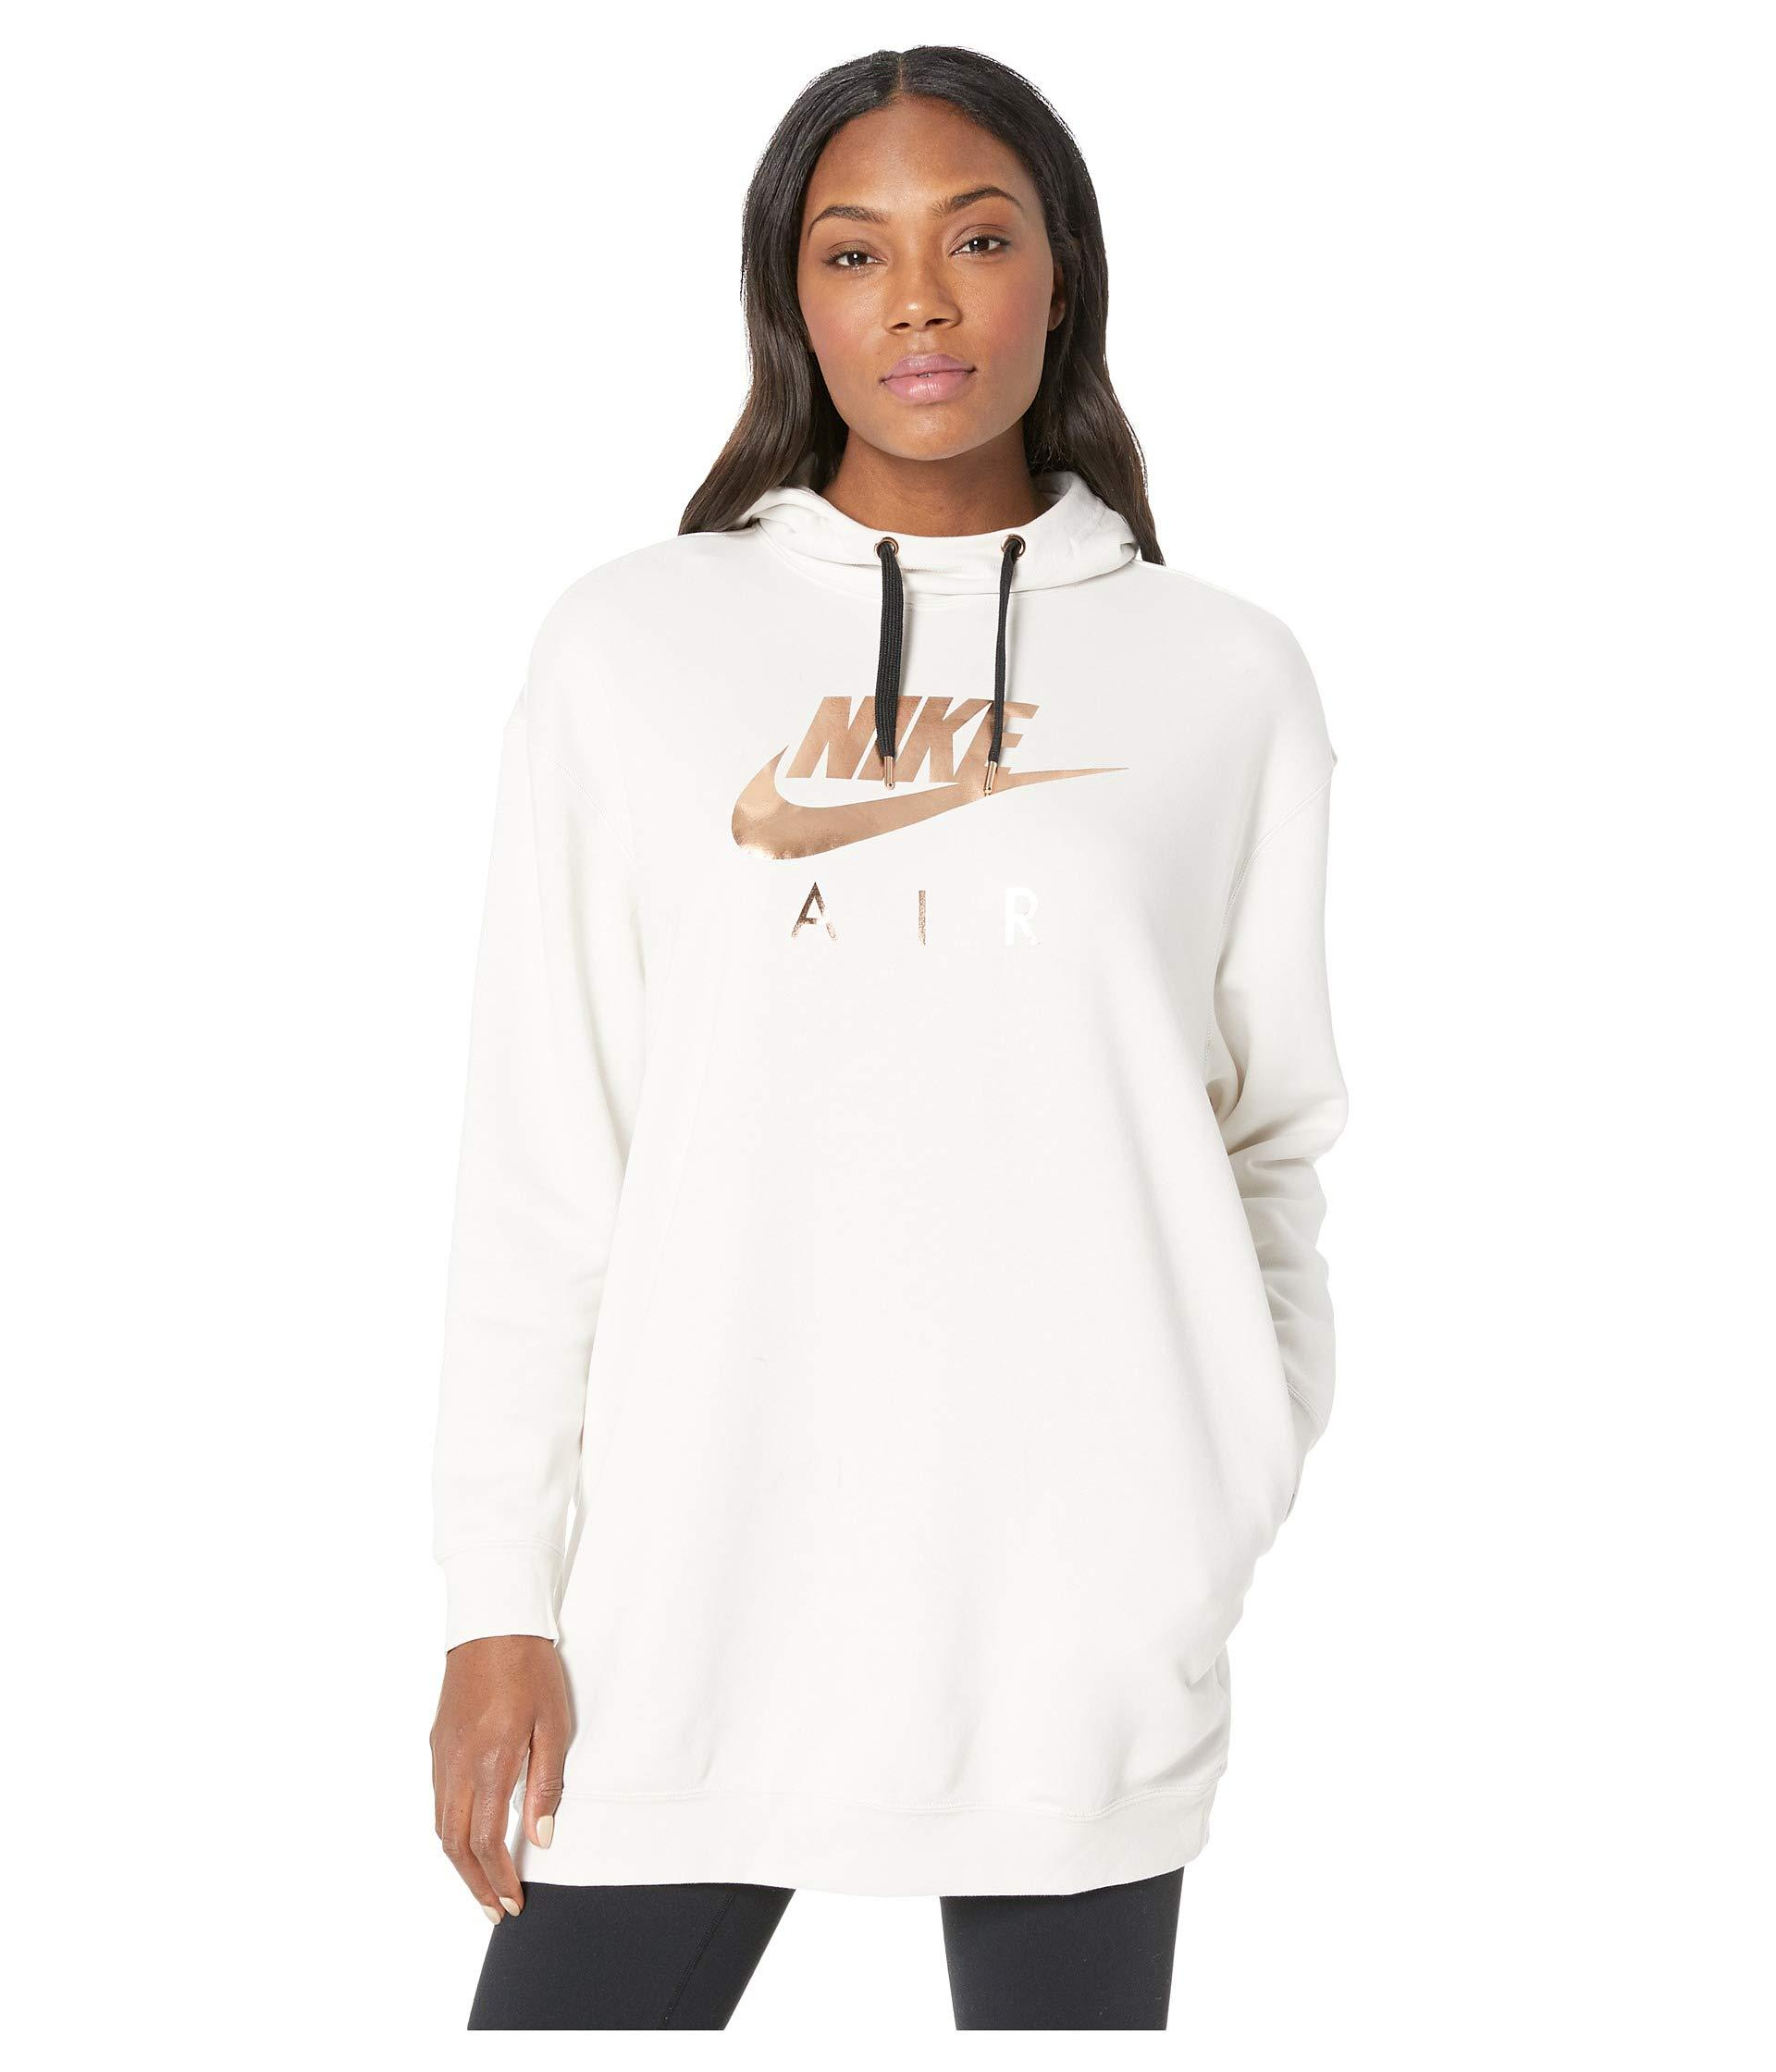 29052a8423705 Lyst - Nike Sportswear Air Hoodie Oversize in White - Save 5%